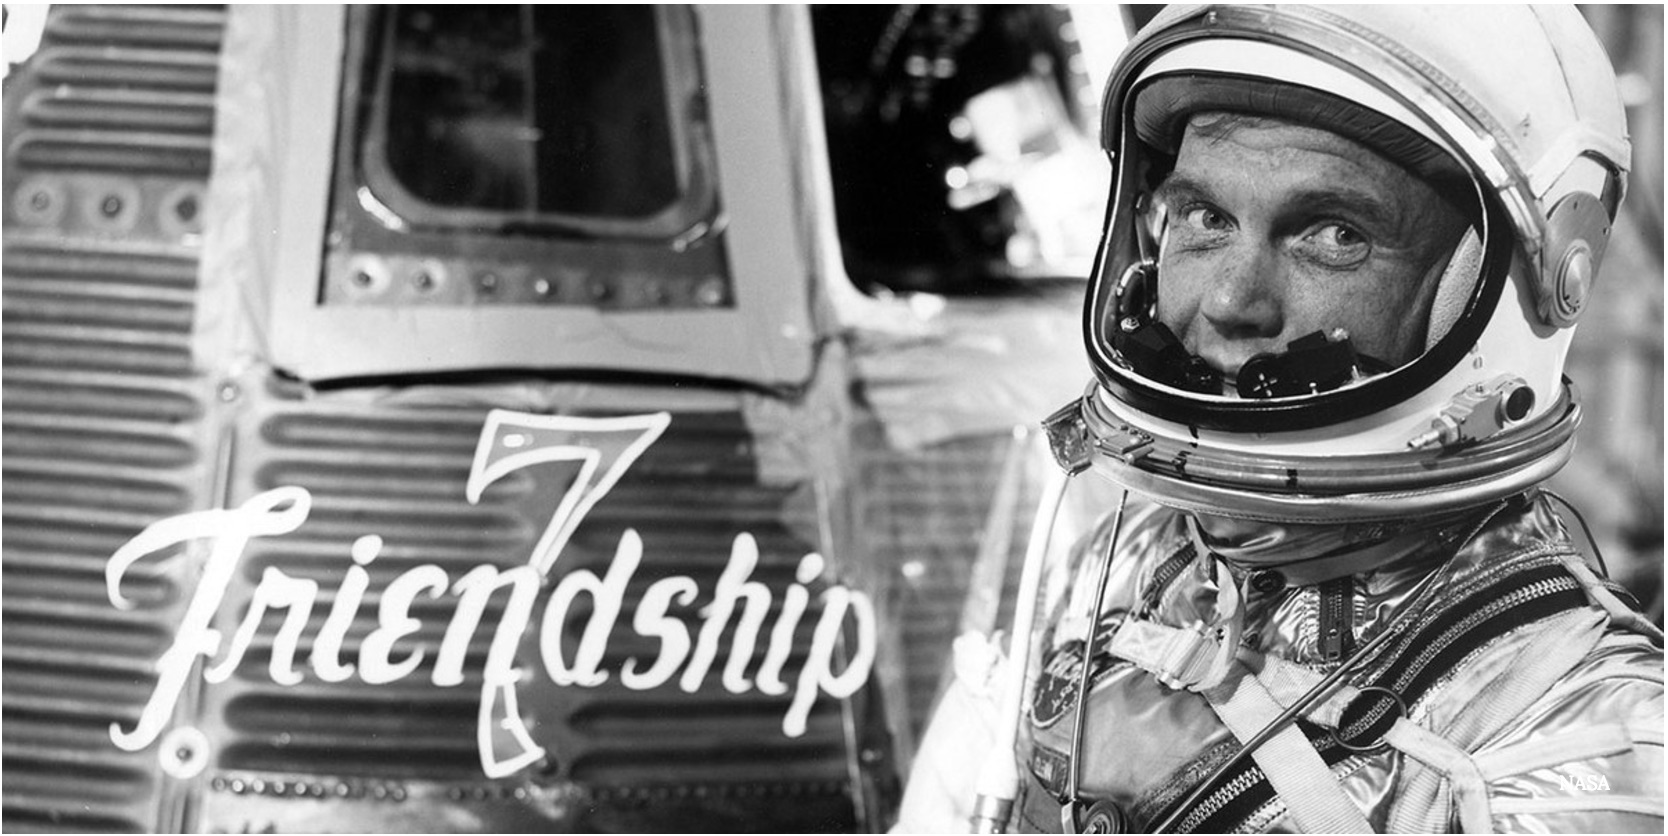 John Glenn's Orbital Mission Tested the Mysteries of the Human Body in Space